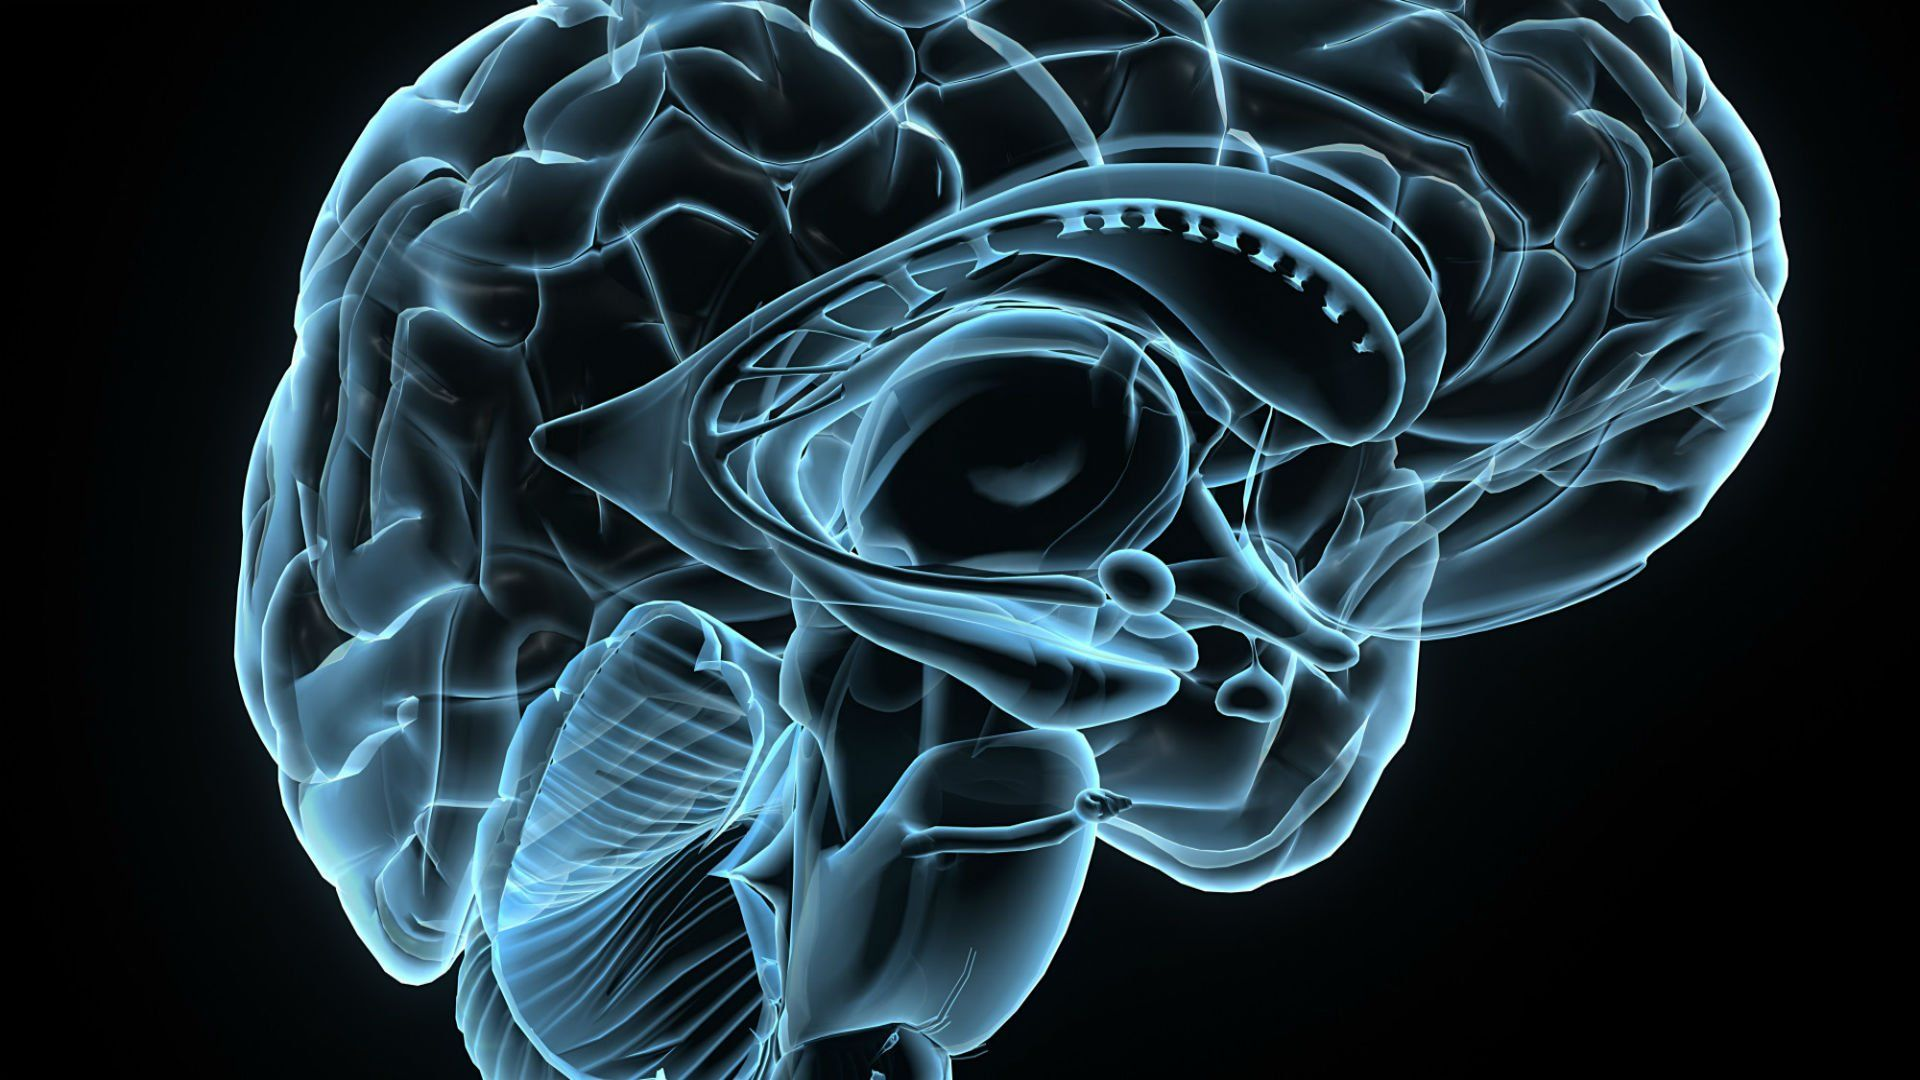 Brain Wallpaper and Background